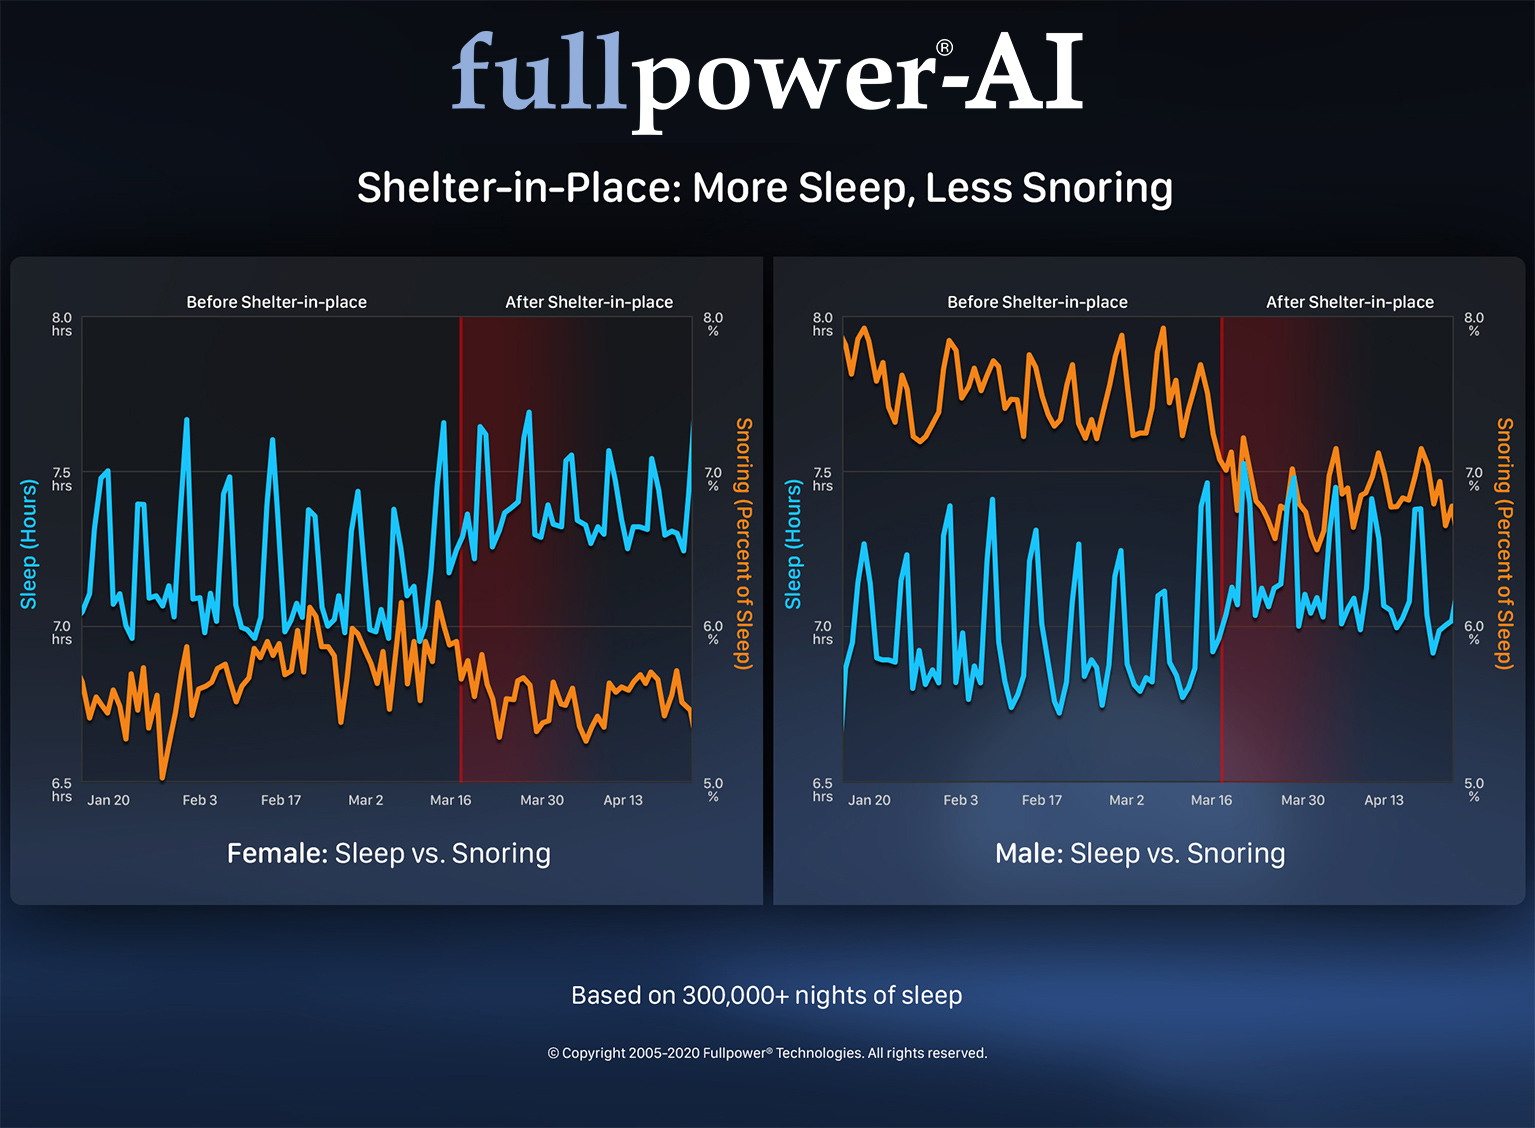 shelter-in-place-more-sleep-less-snoring